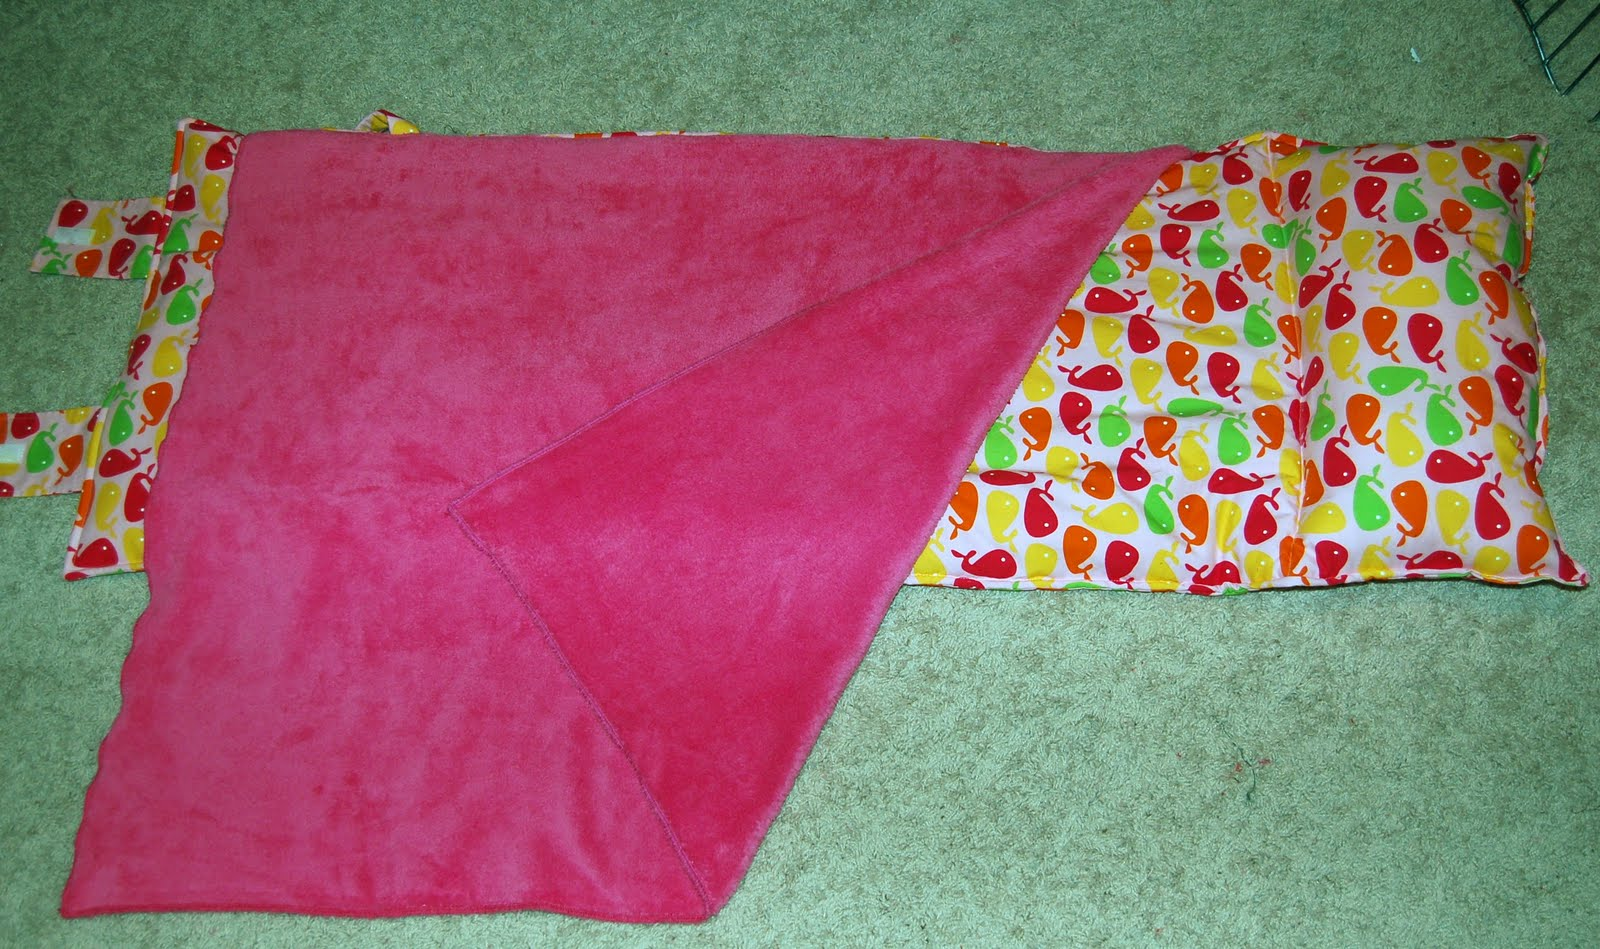 ... pink background with raspberry, lime green, yellow, . (pink whales nm